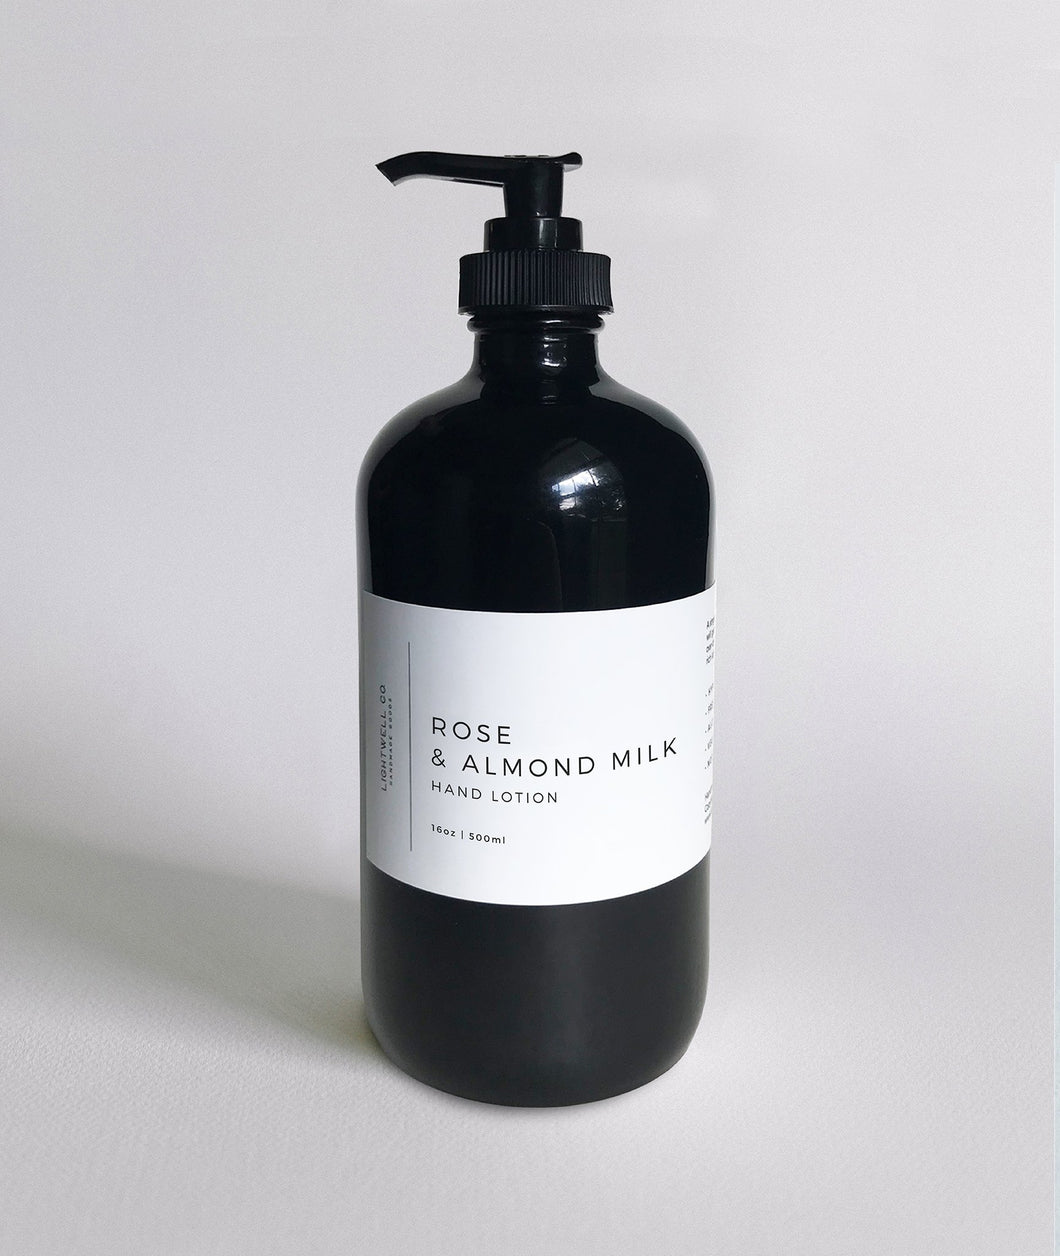 Rose & Almond Milk Hand Lotion